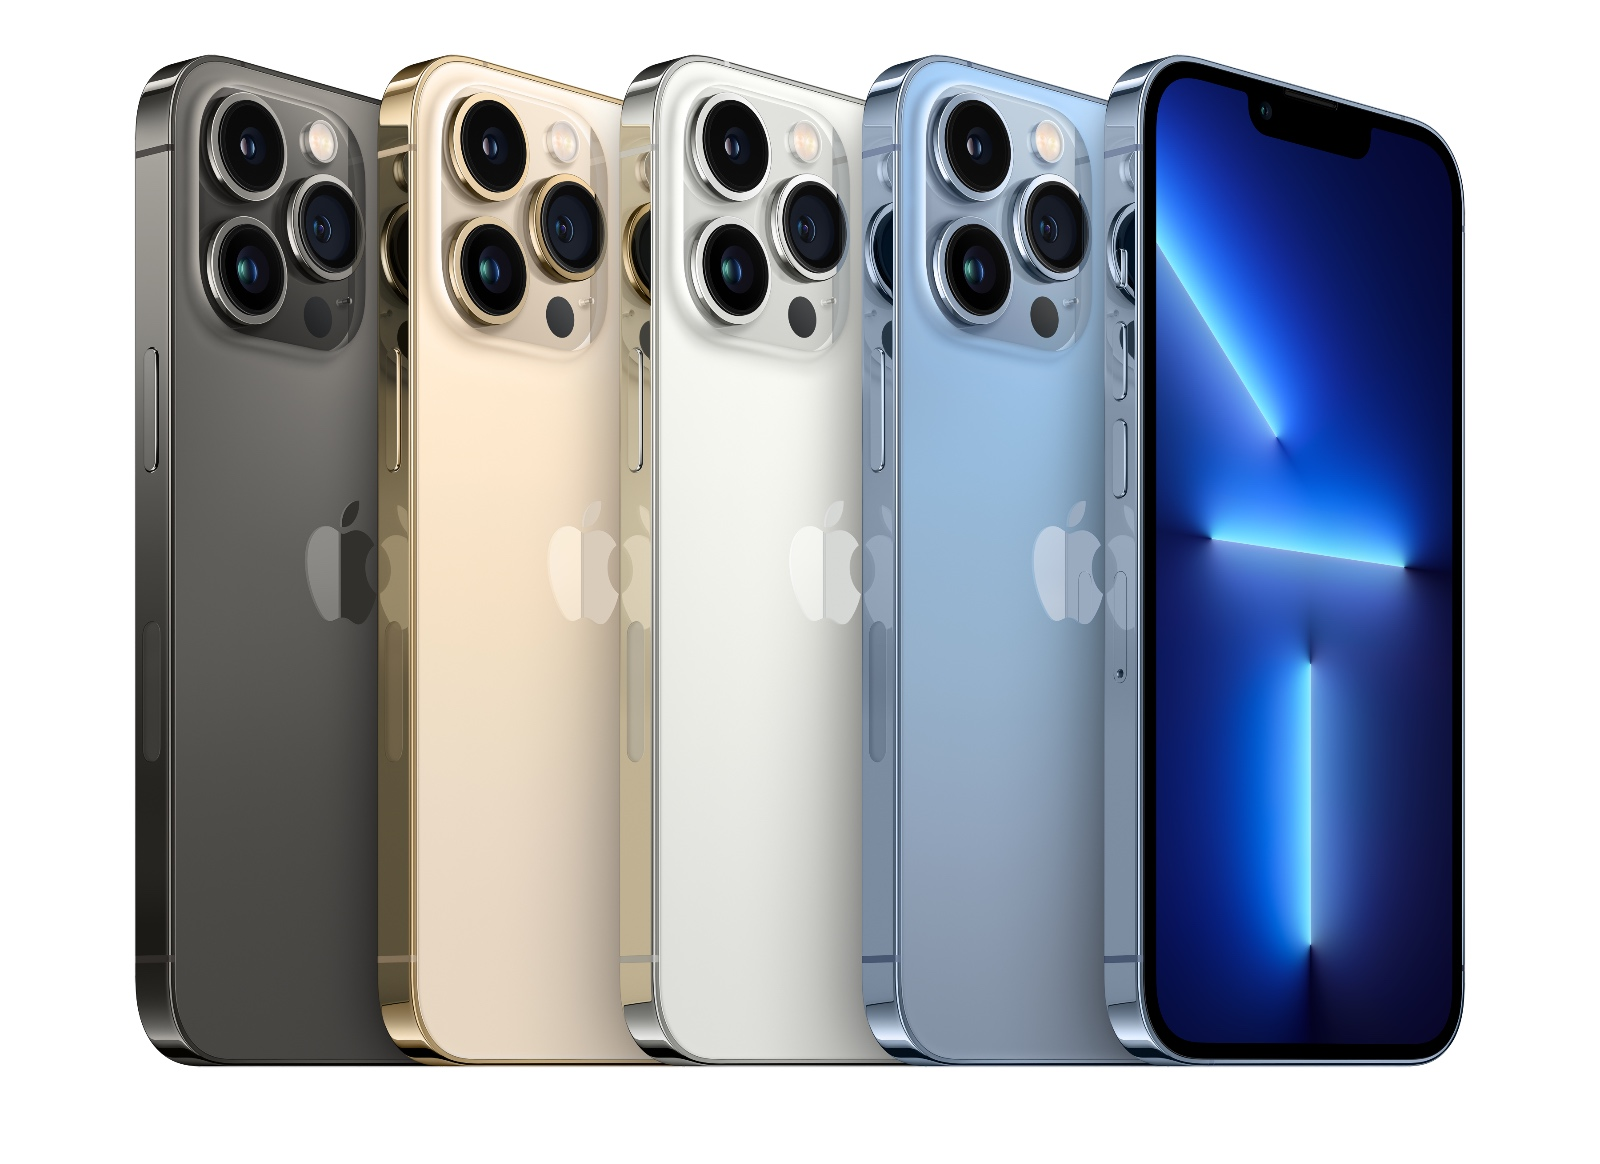 The various colours of the iPhone 13 Pro. From left to right: Graphite, Gold, Silver, and Sierra Blue.